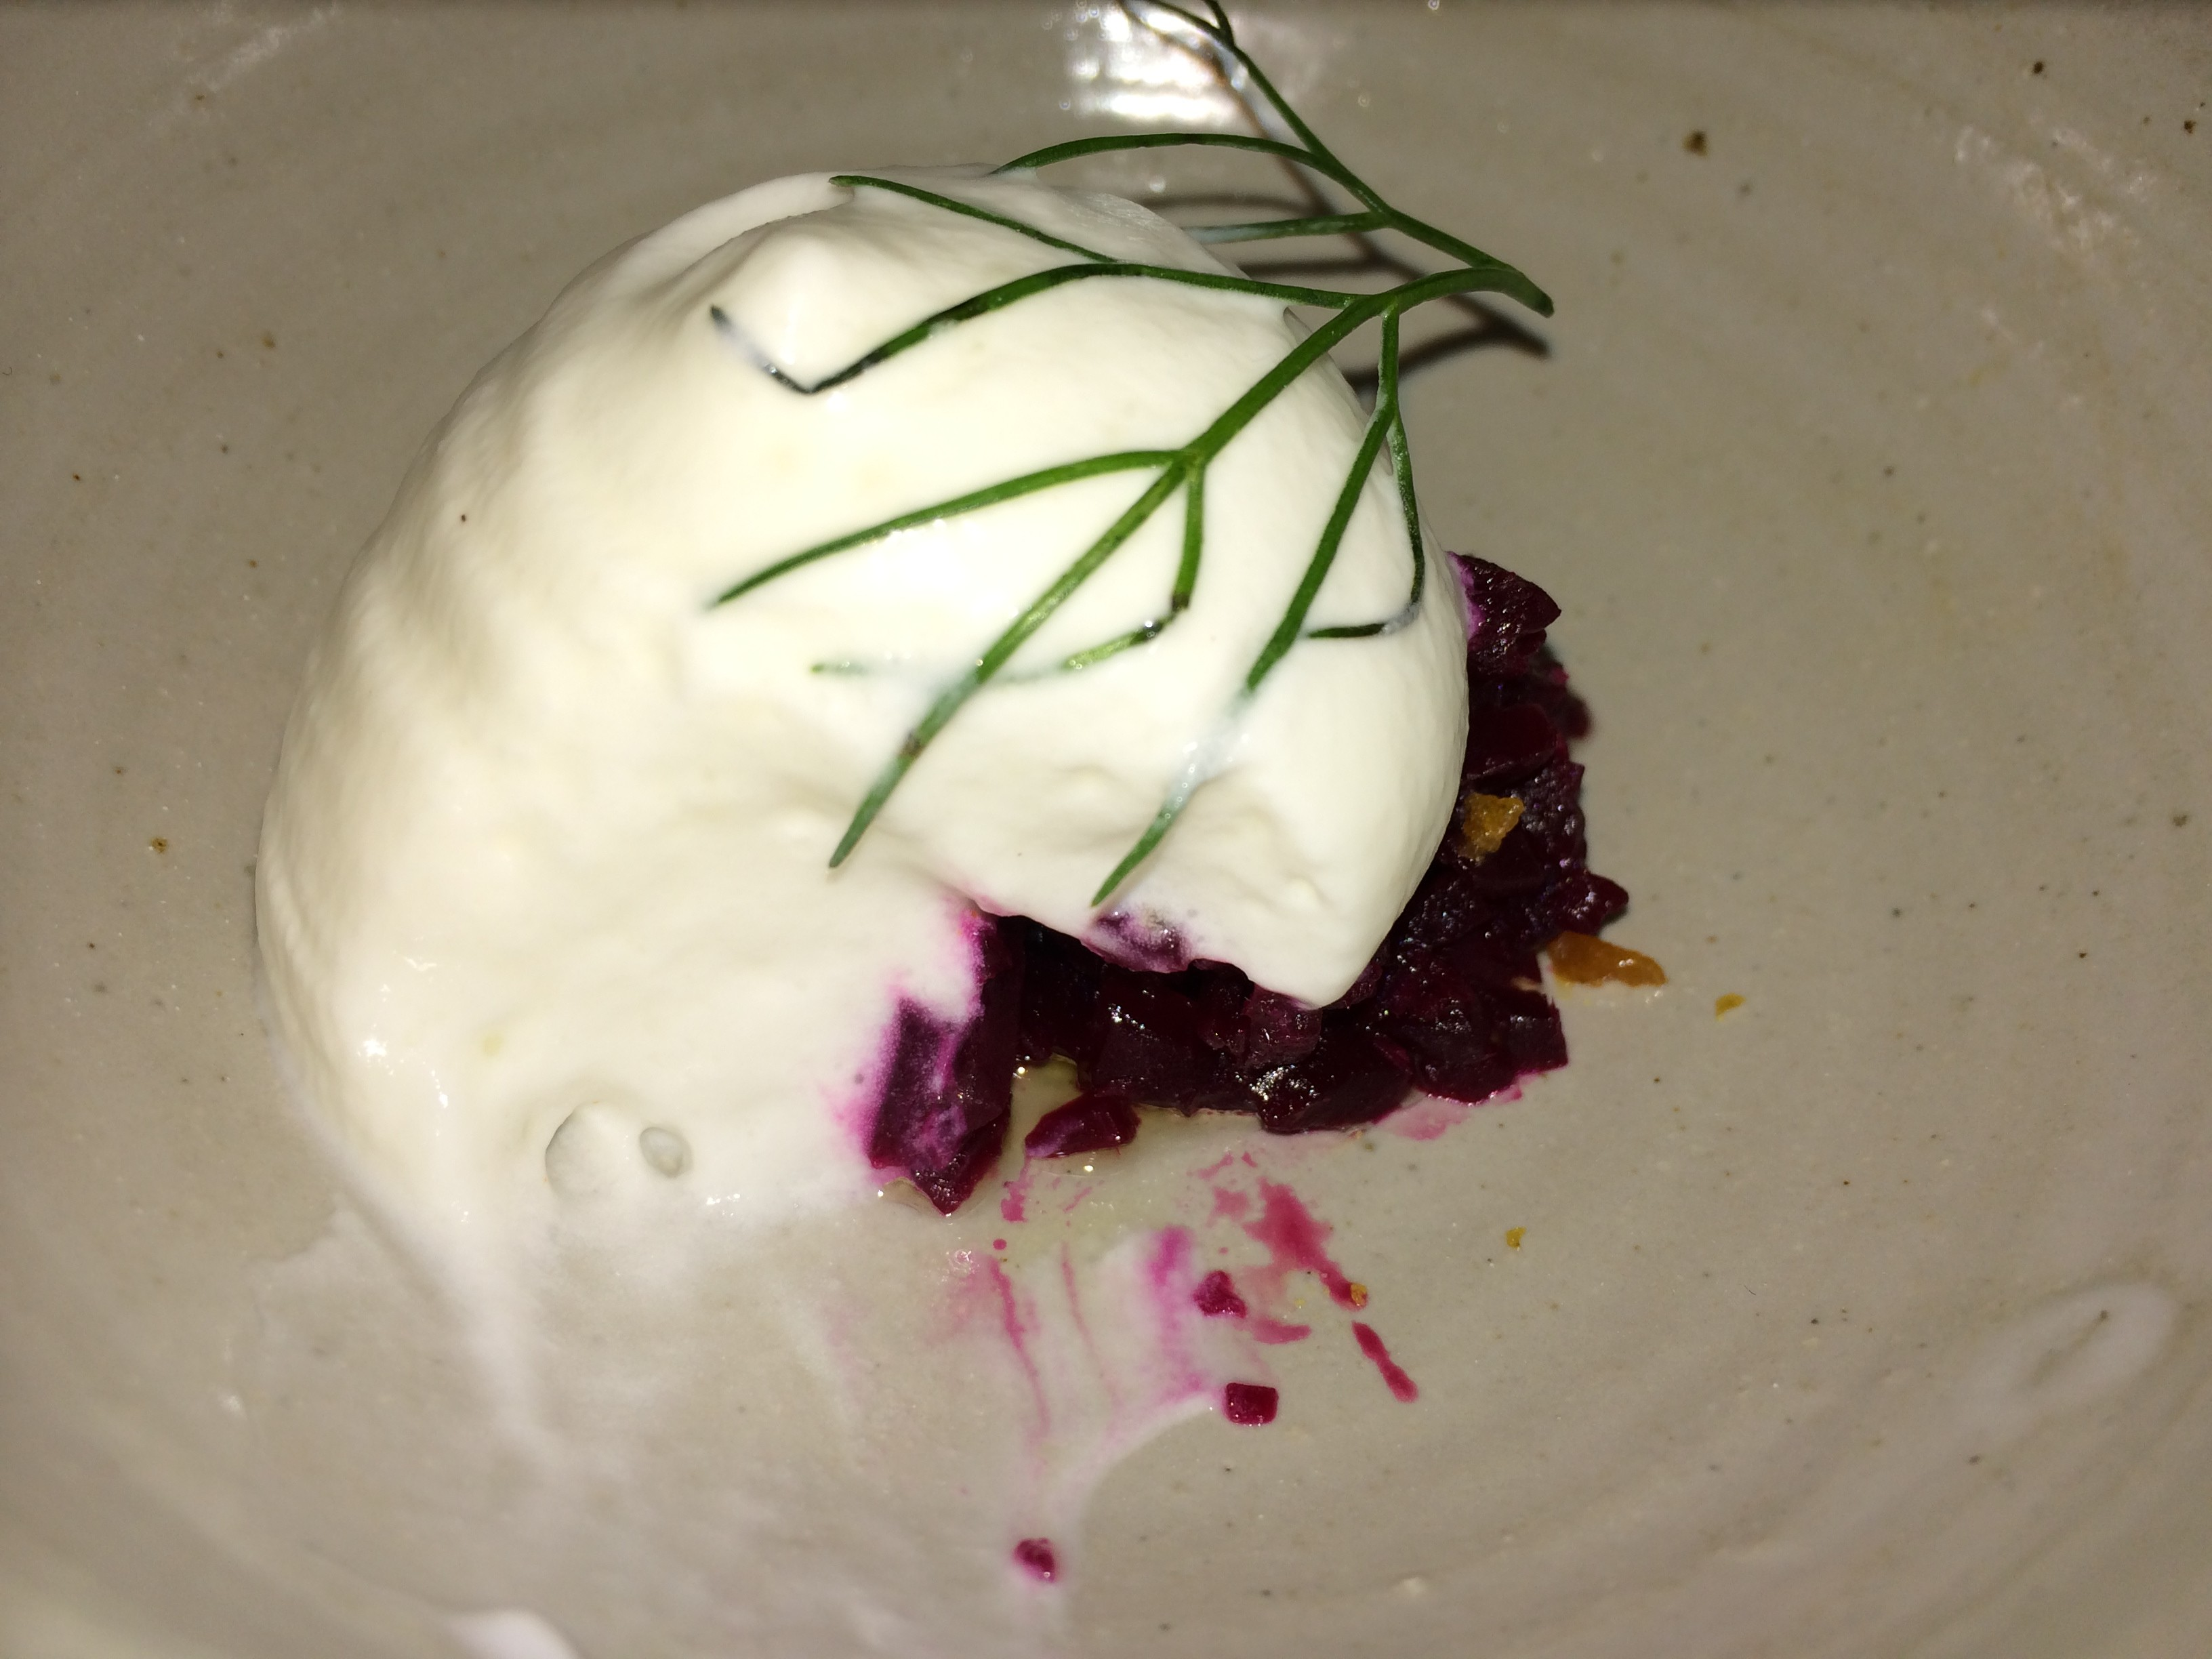 Roasted Red Beets, Goats Milk Froth and Freshly Grated Horseradish